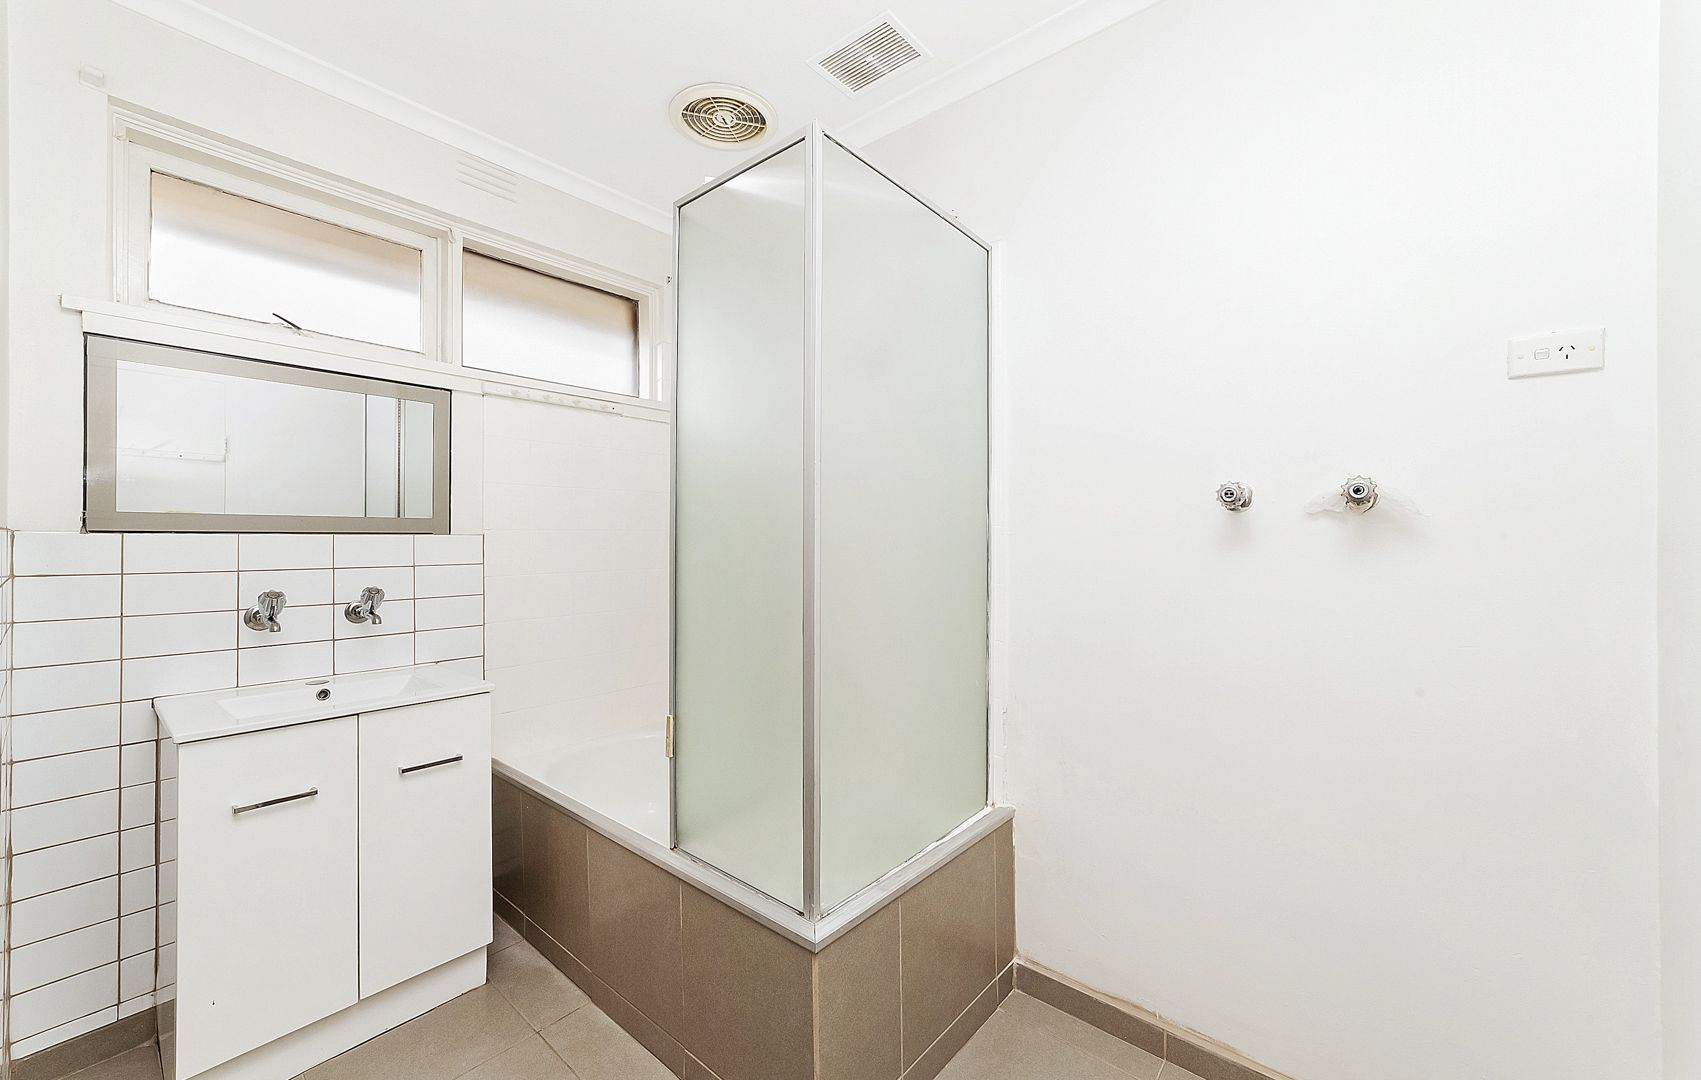 7/12 Carmichael Street, West Footscray VIC 3012, Image 5